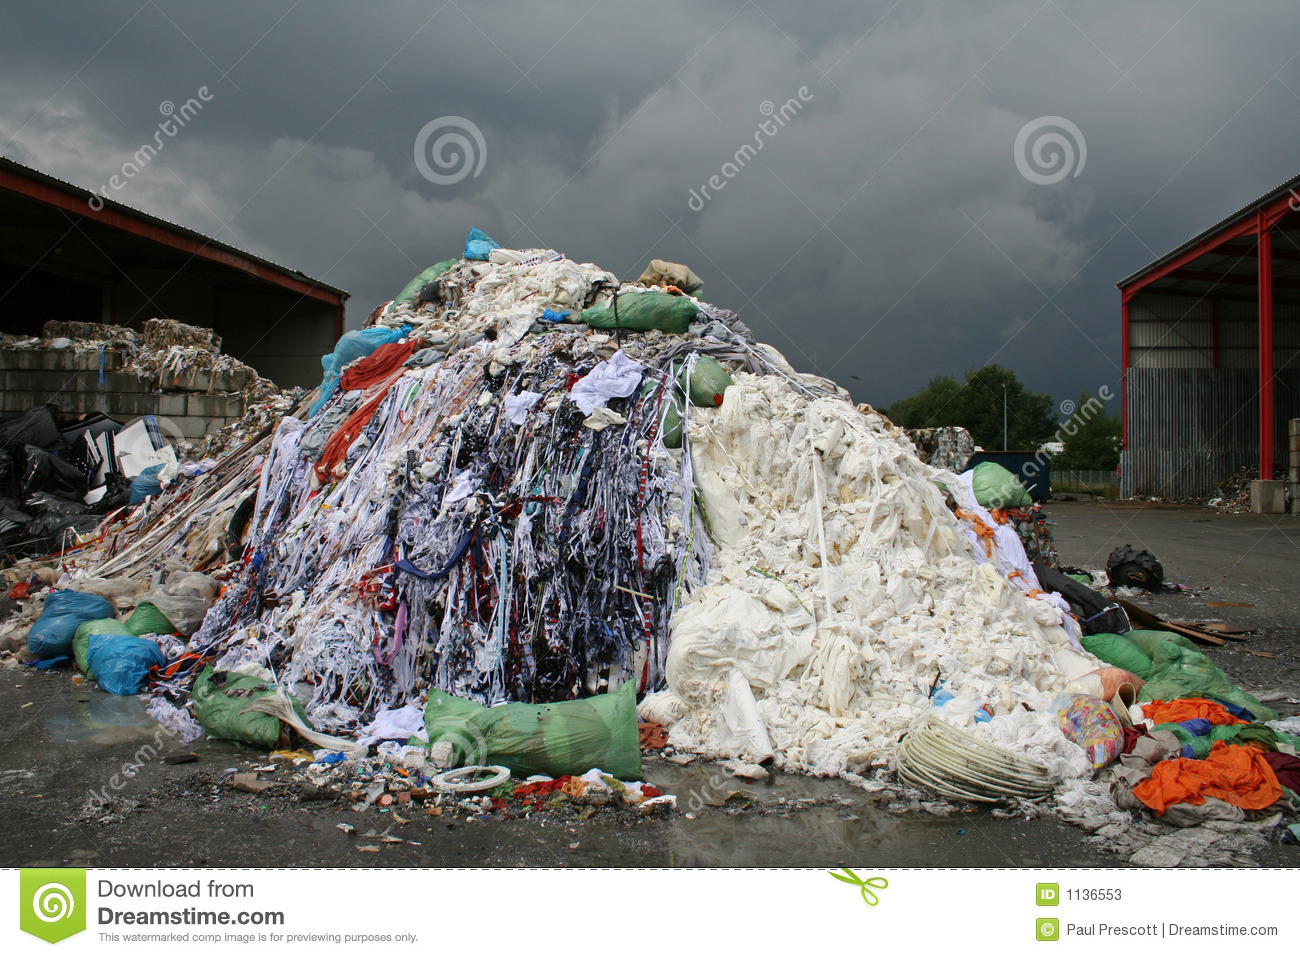 Waste material stock photos image 1136553 for Waste materials